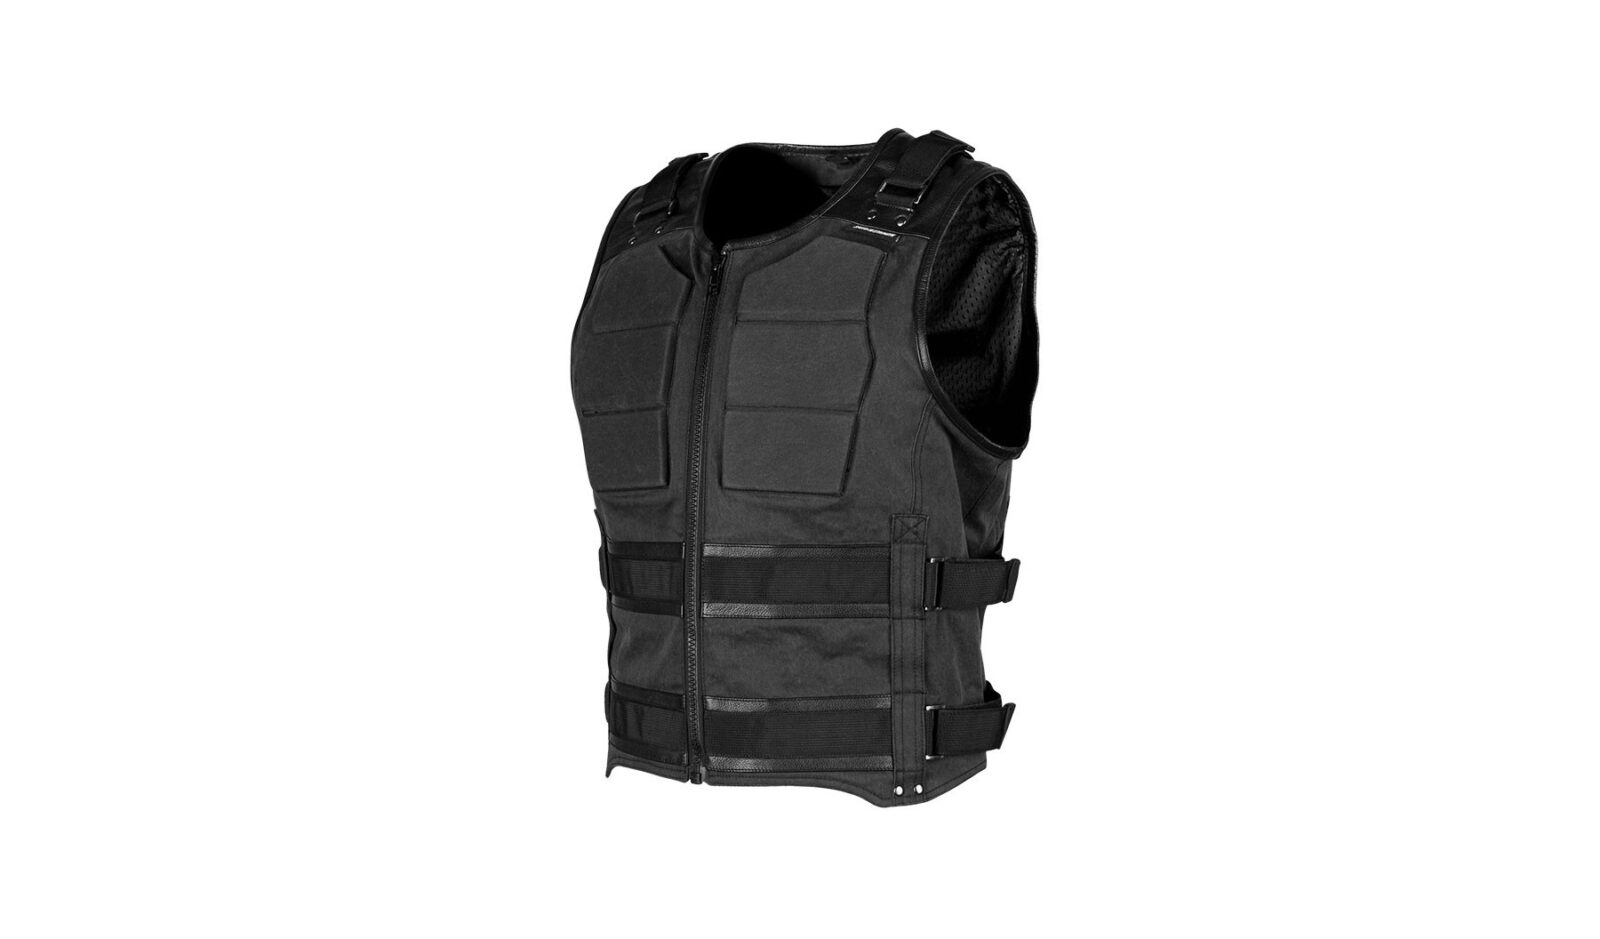 Speed and Strength True Grit Armored Motorcycle Vest Main Hero Image 1600x939 - Speed and Strength True Grit Armored Motorcycle Vest